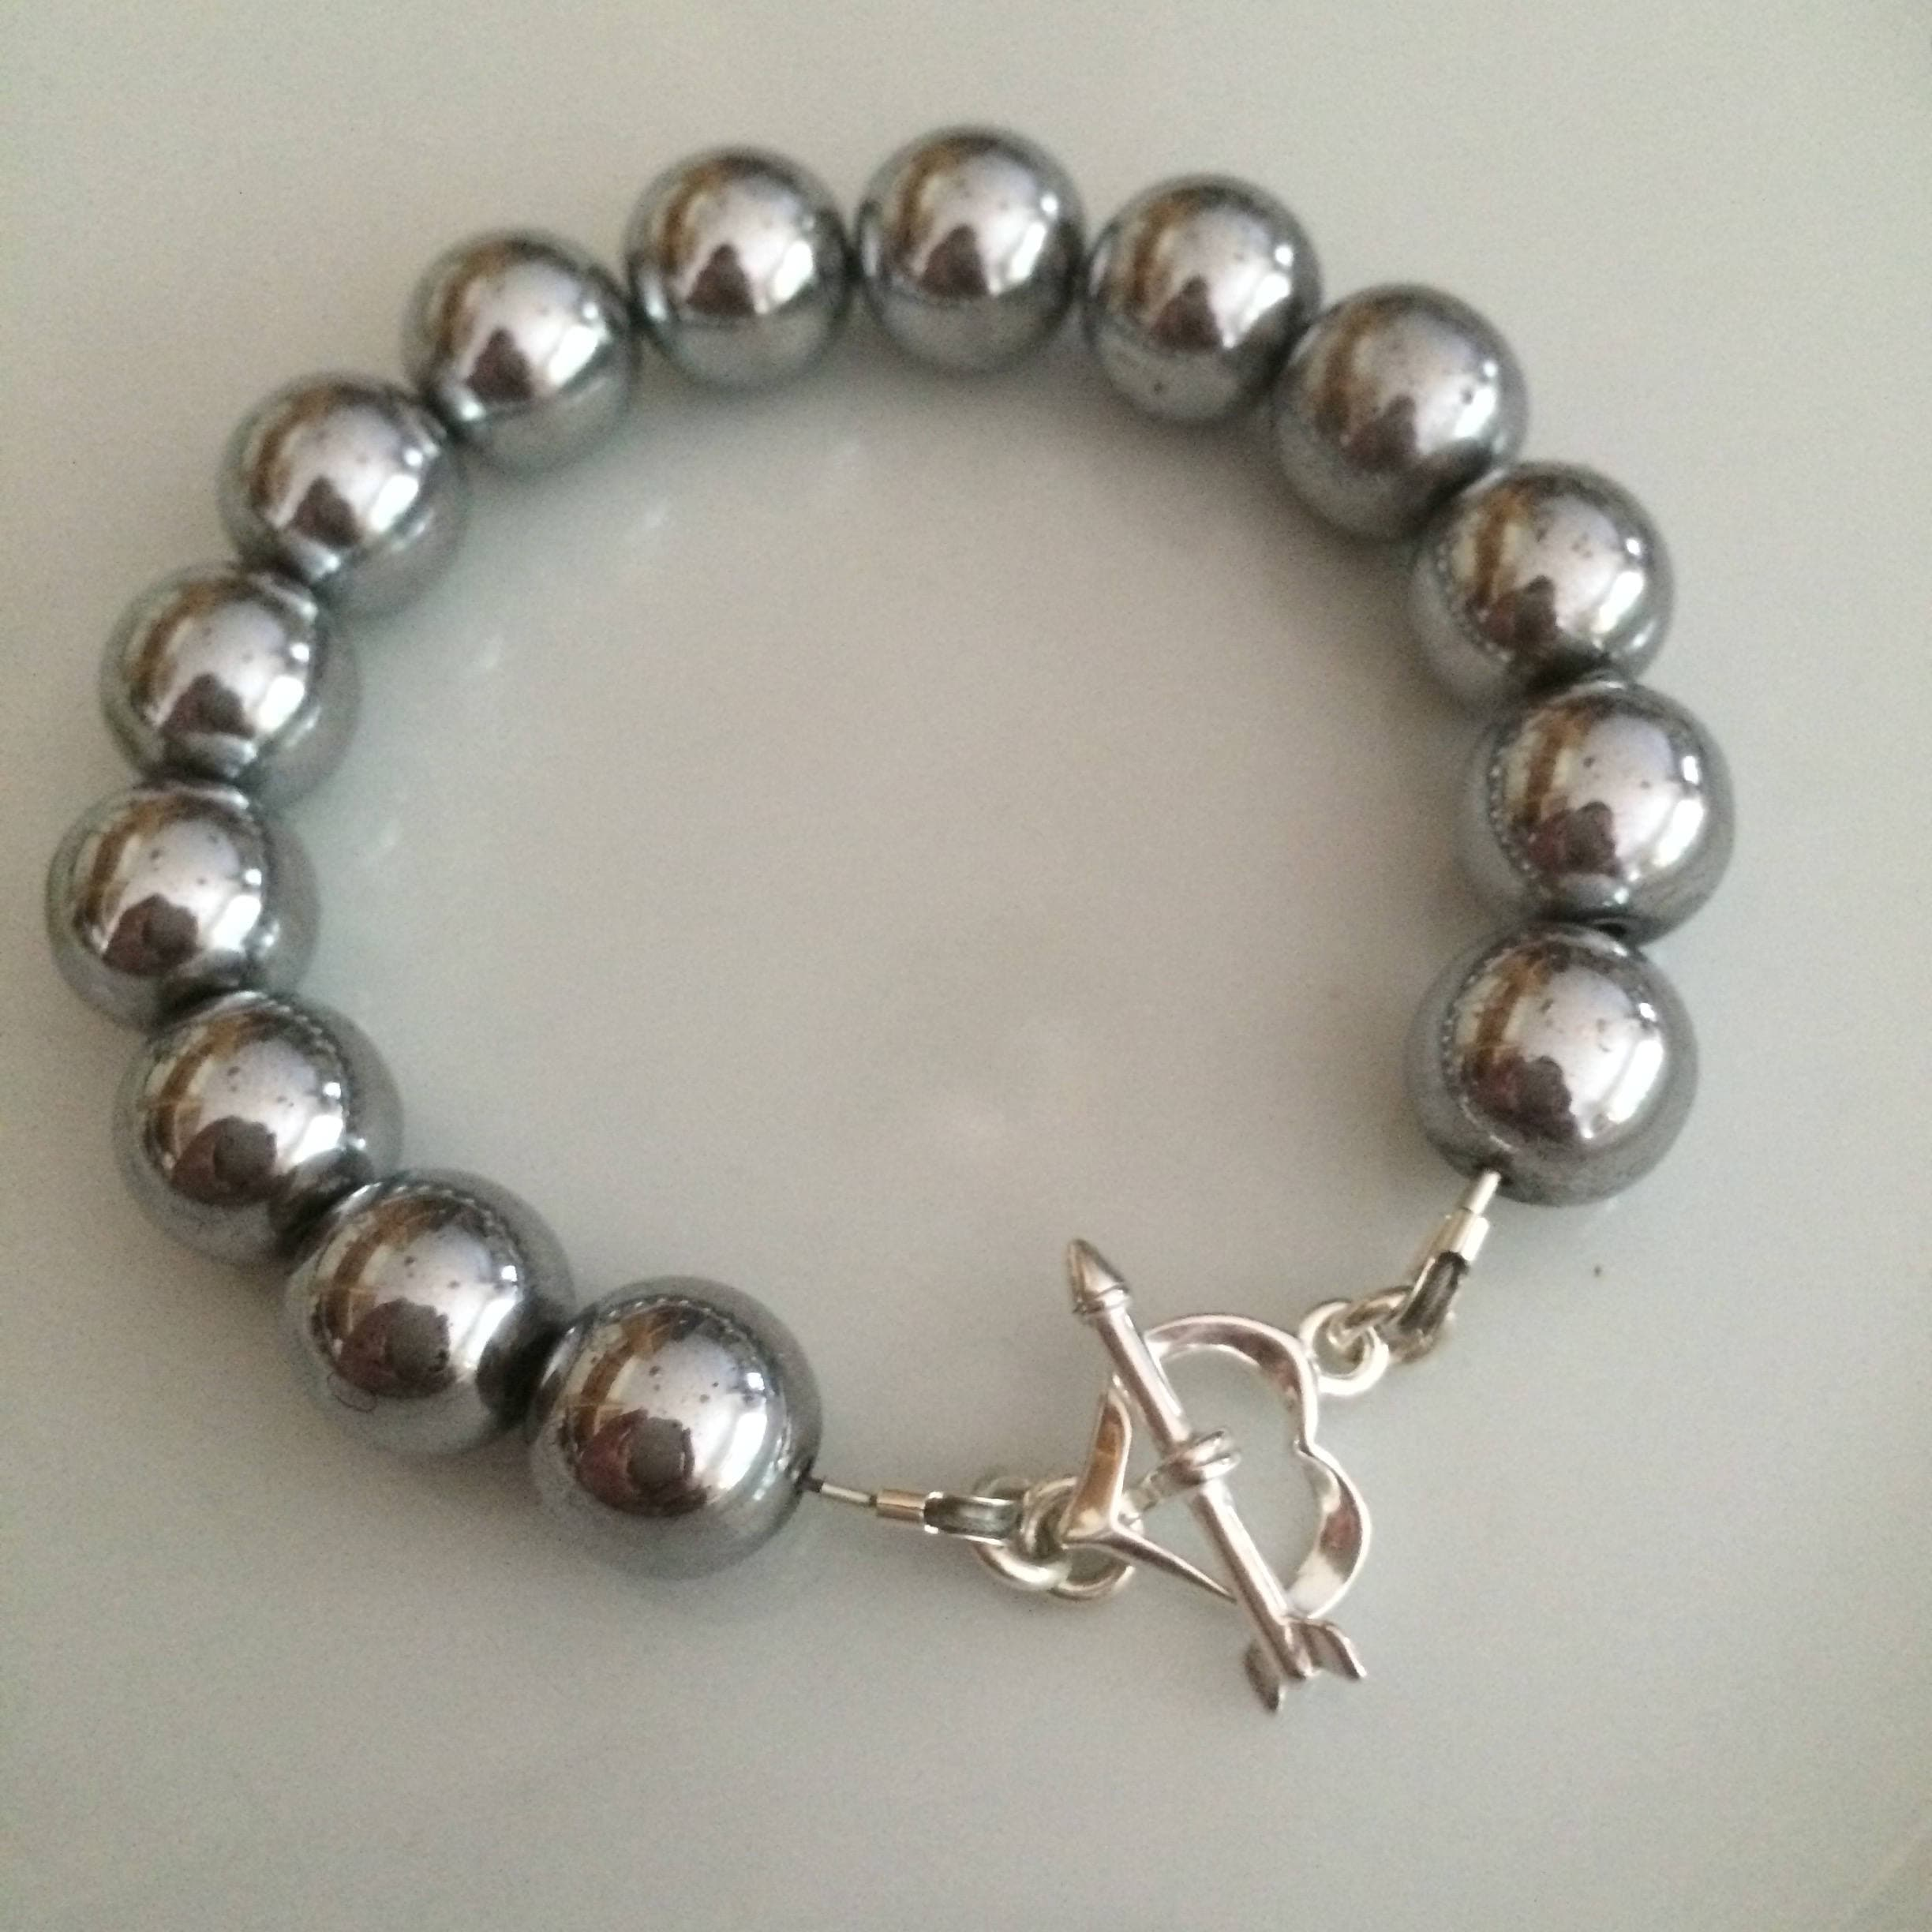 fd24a22417e79a Chunky Silver Hematite gemstone bead bracelet with Sterling Silver heart  toggle clasp